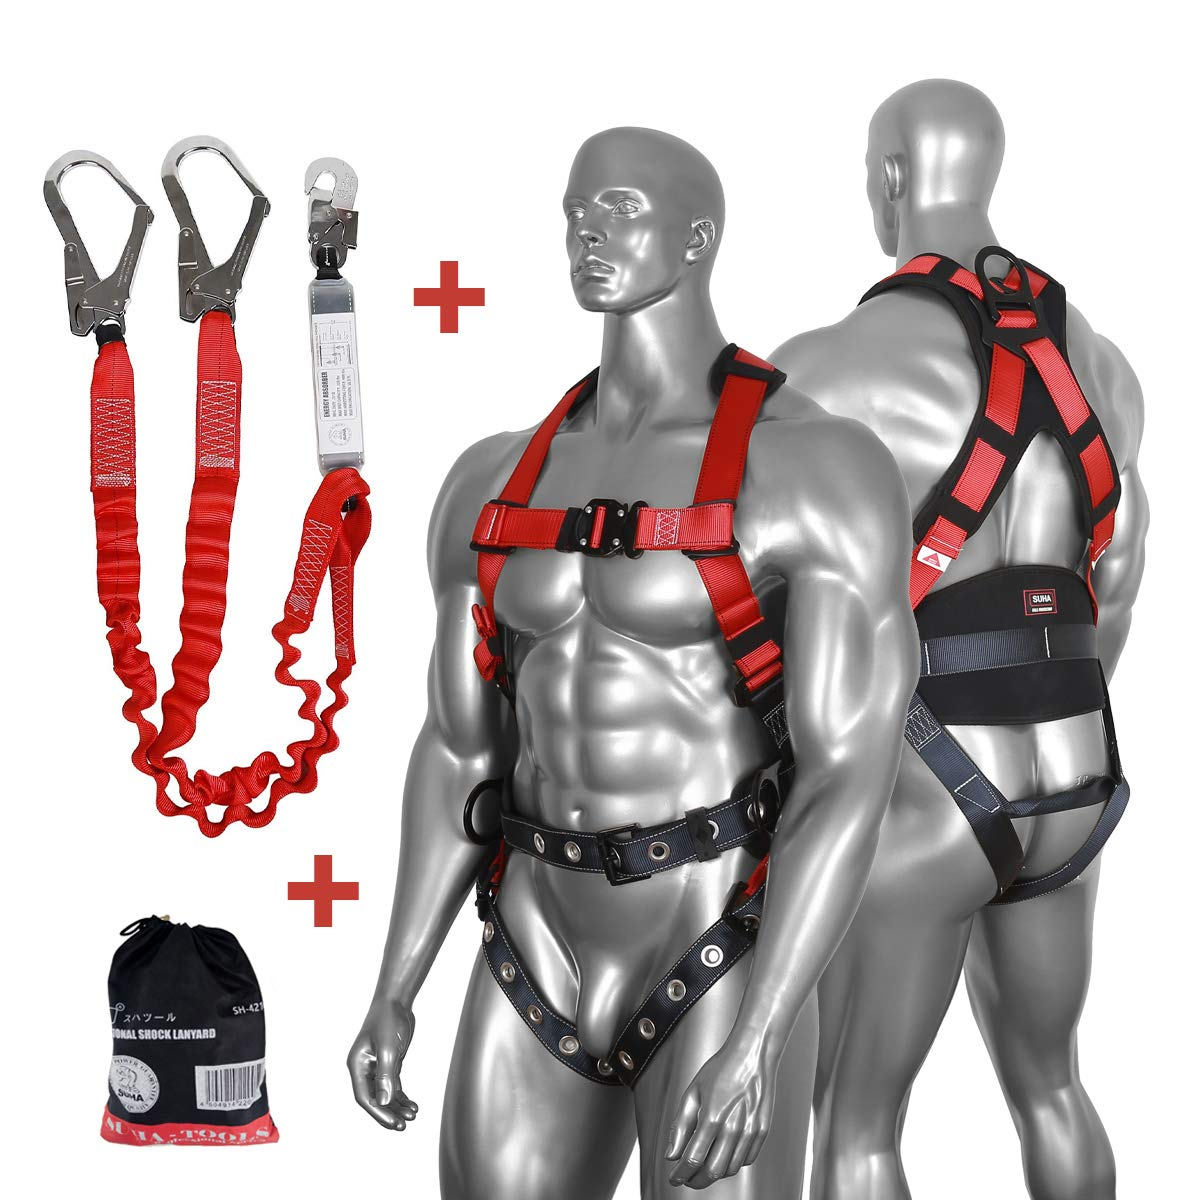 DCM Fall Arest Protection Universal Padded Safety Harness Kit with Shock Absorb Webbing Lanyard by SUHA